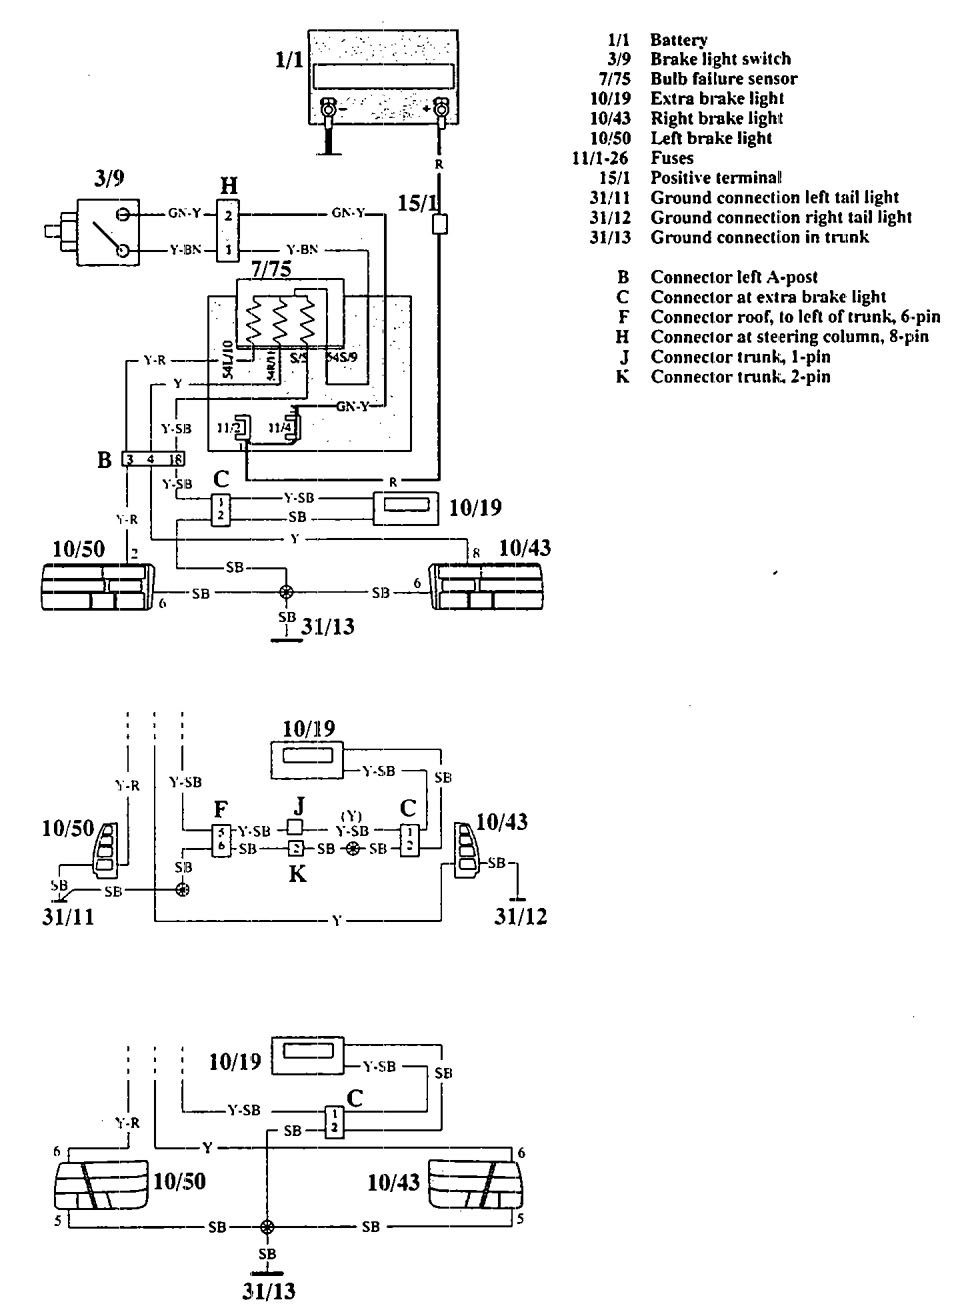 1985 Volvo Fuse Diagram Great Design Of Wiring 2004 Xc90 940 Box 26 Images S40 Location